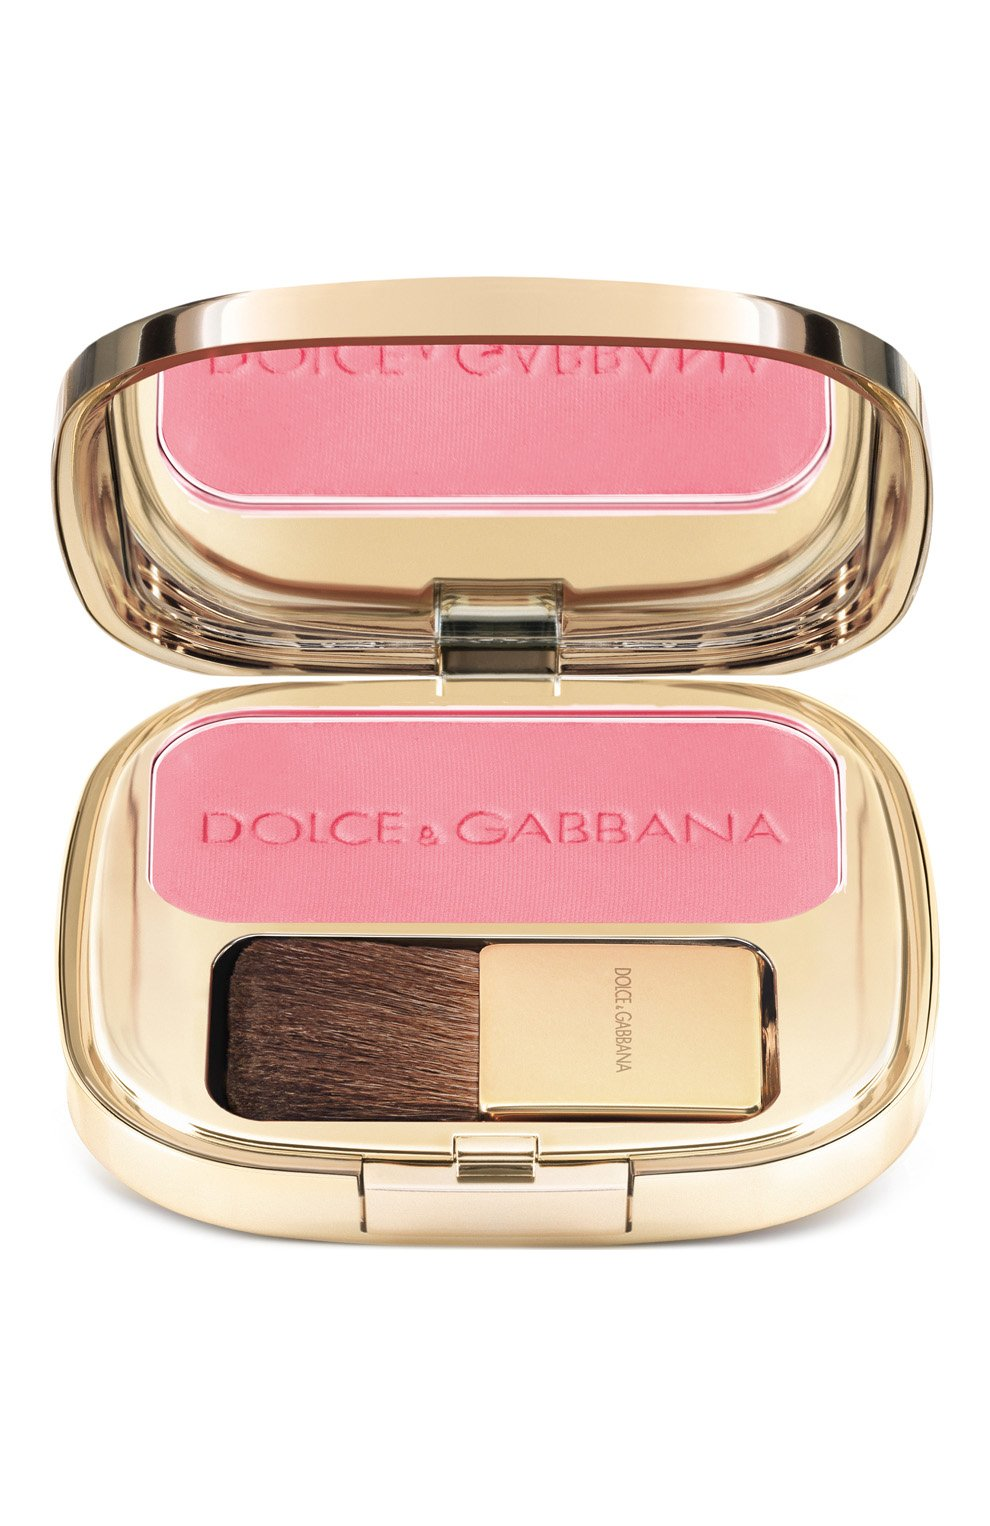 Румяна Luminous Cheek Colour 40 тон (provocative) Dolce & Gabbana | Фото №1